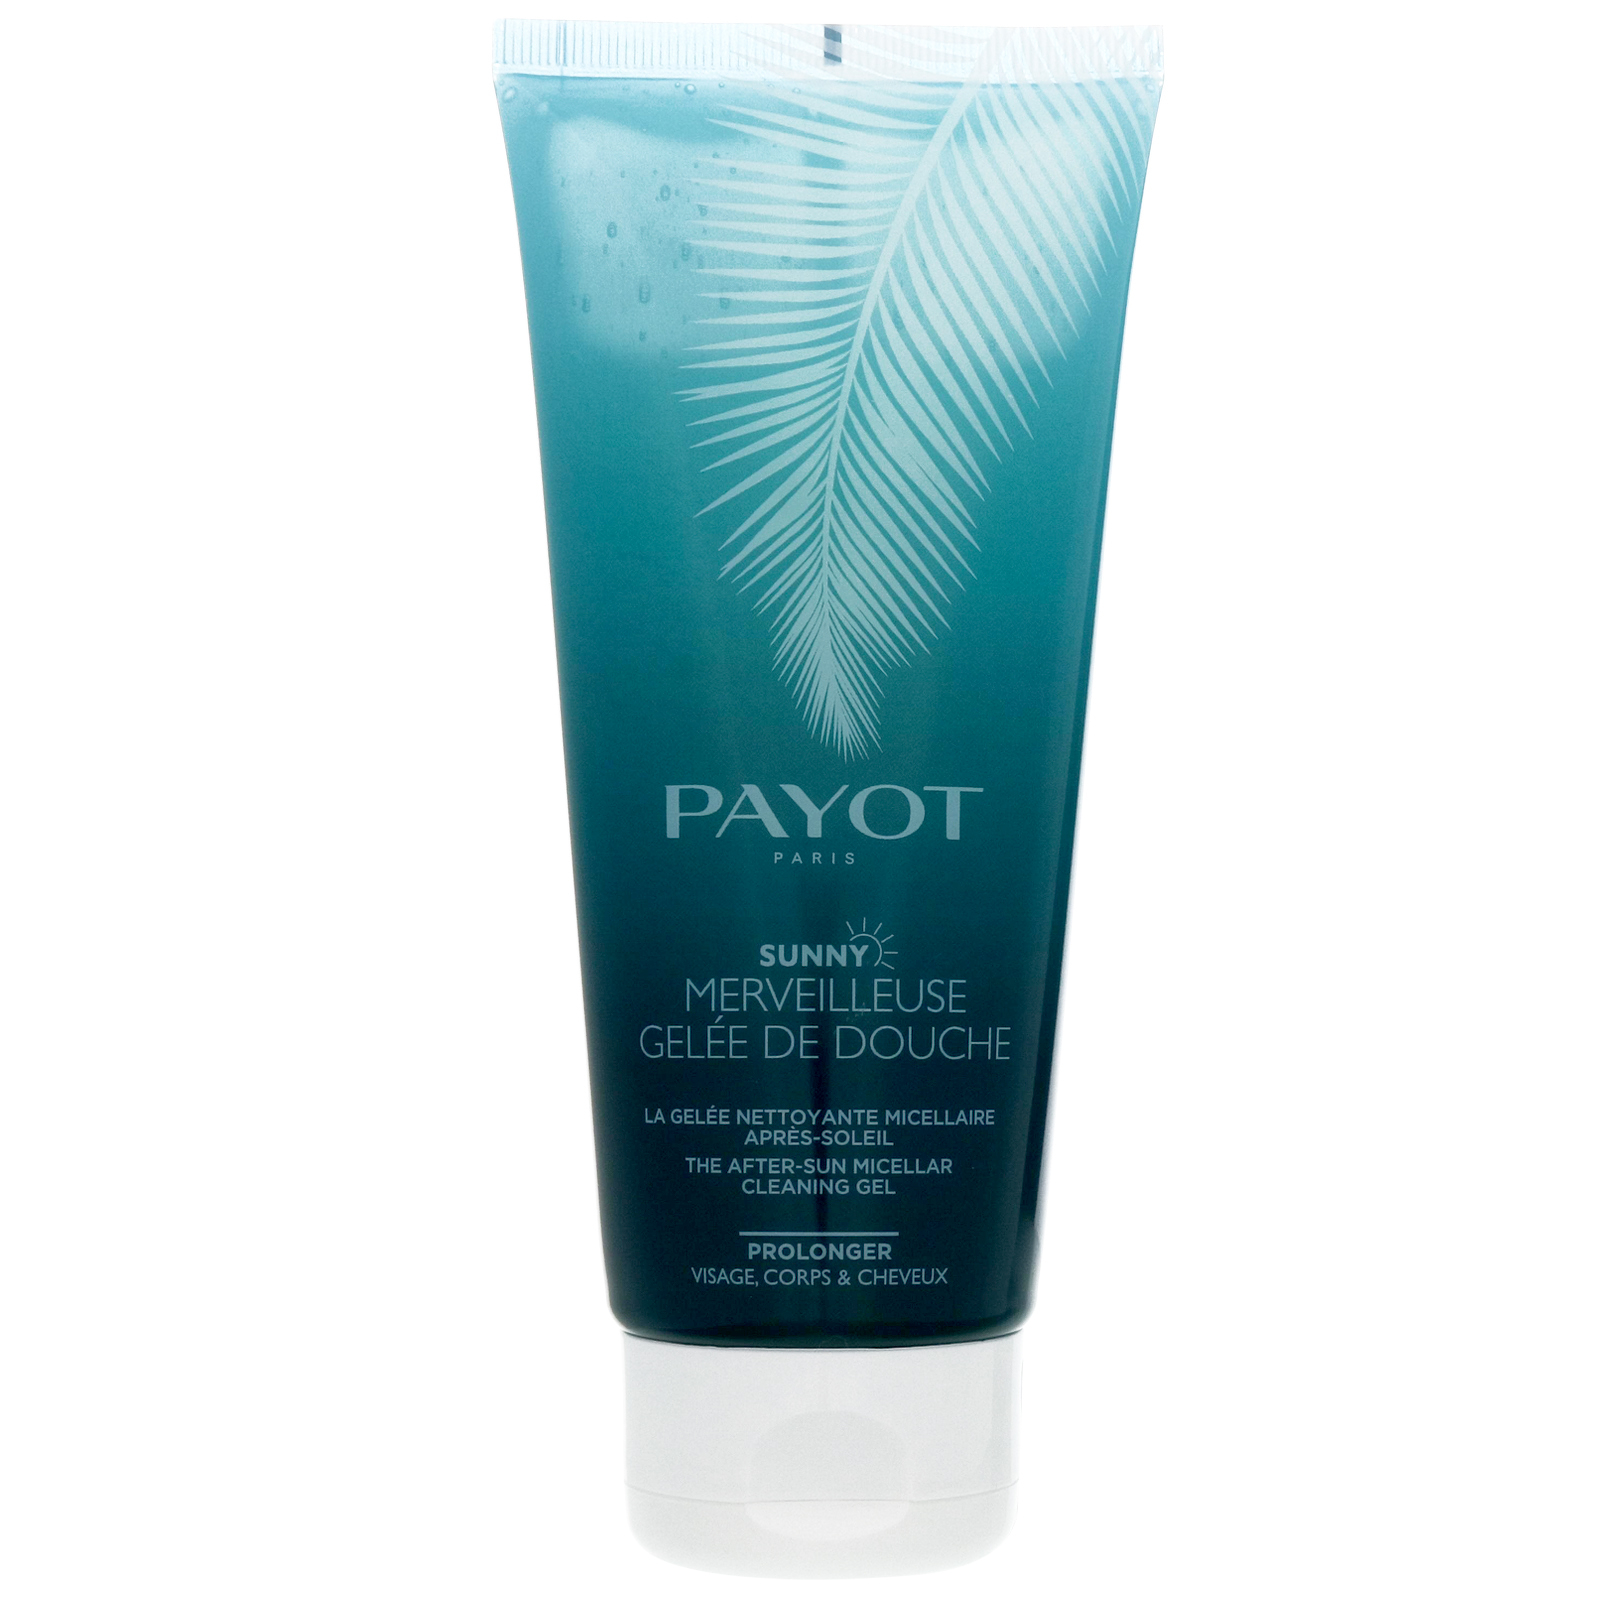 Payot Paris Sunny Merveilleuse Gelee De Douche: After-sun Micellar Cleaning Gel 200ml